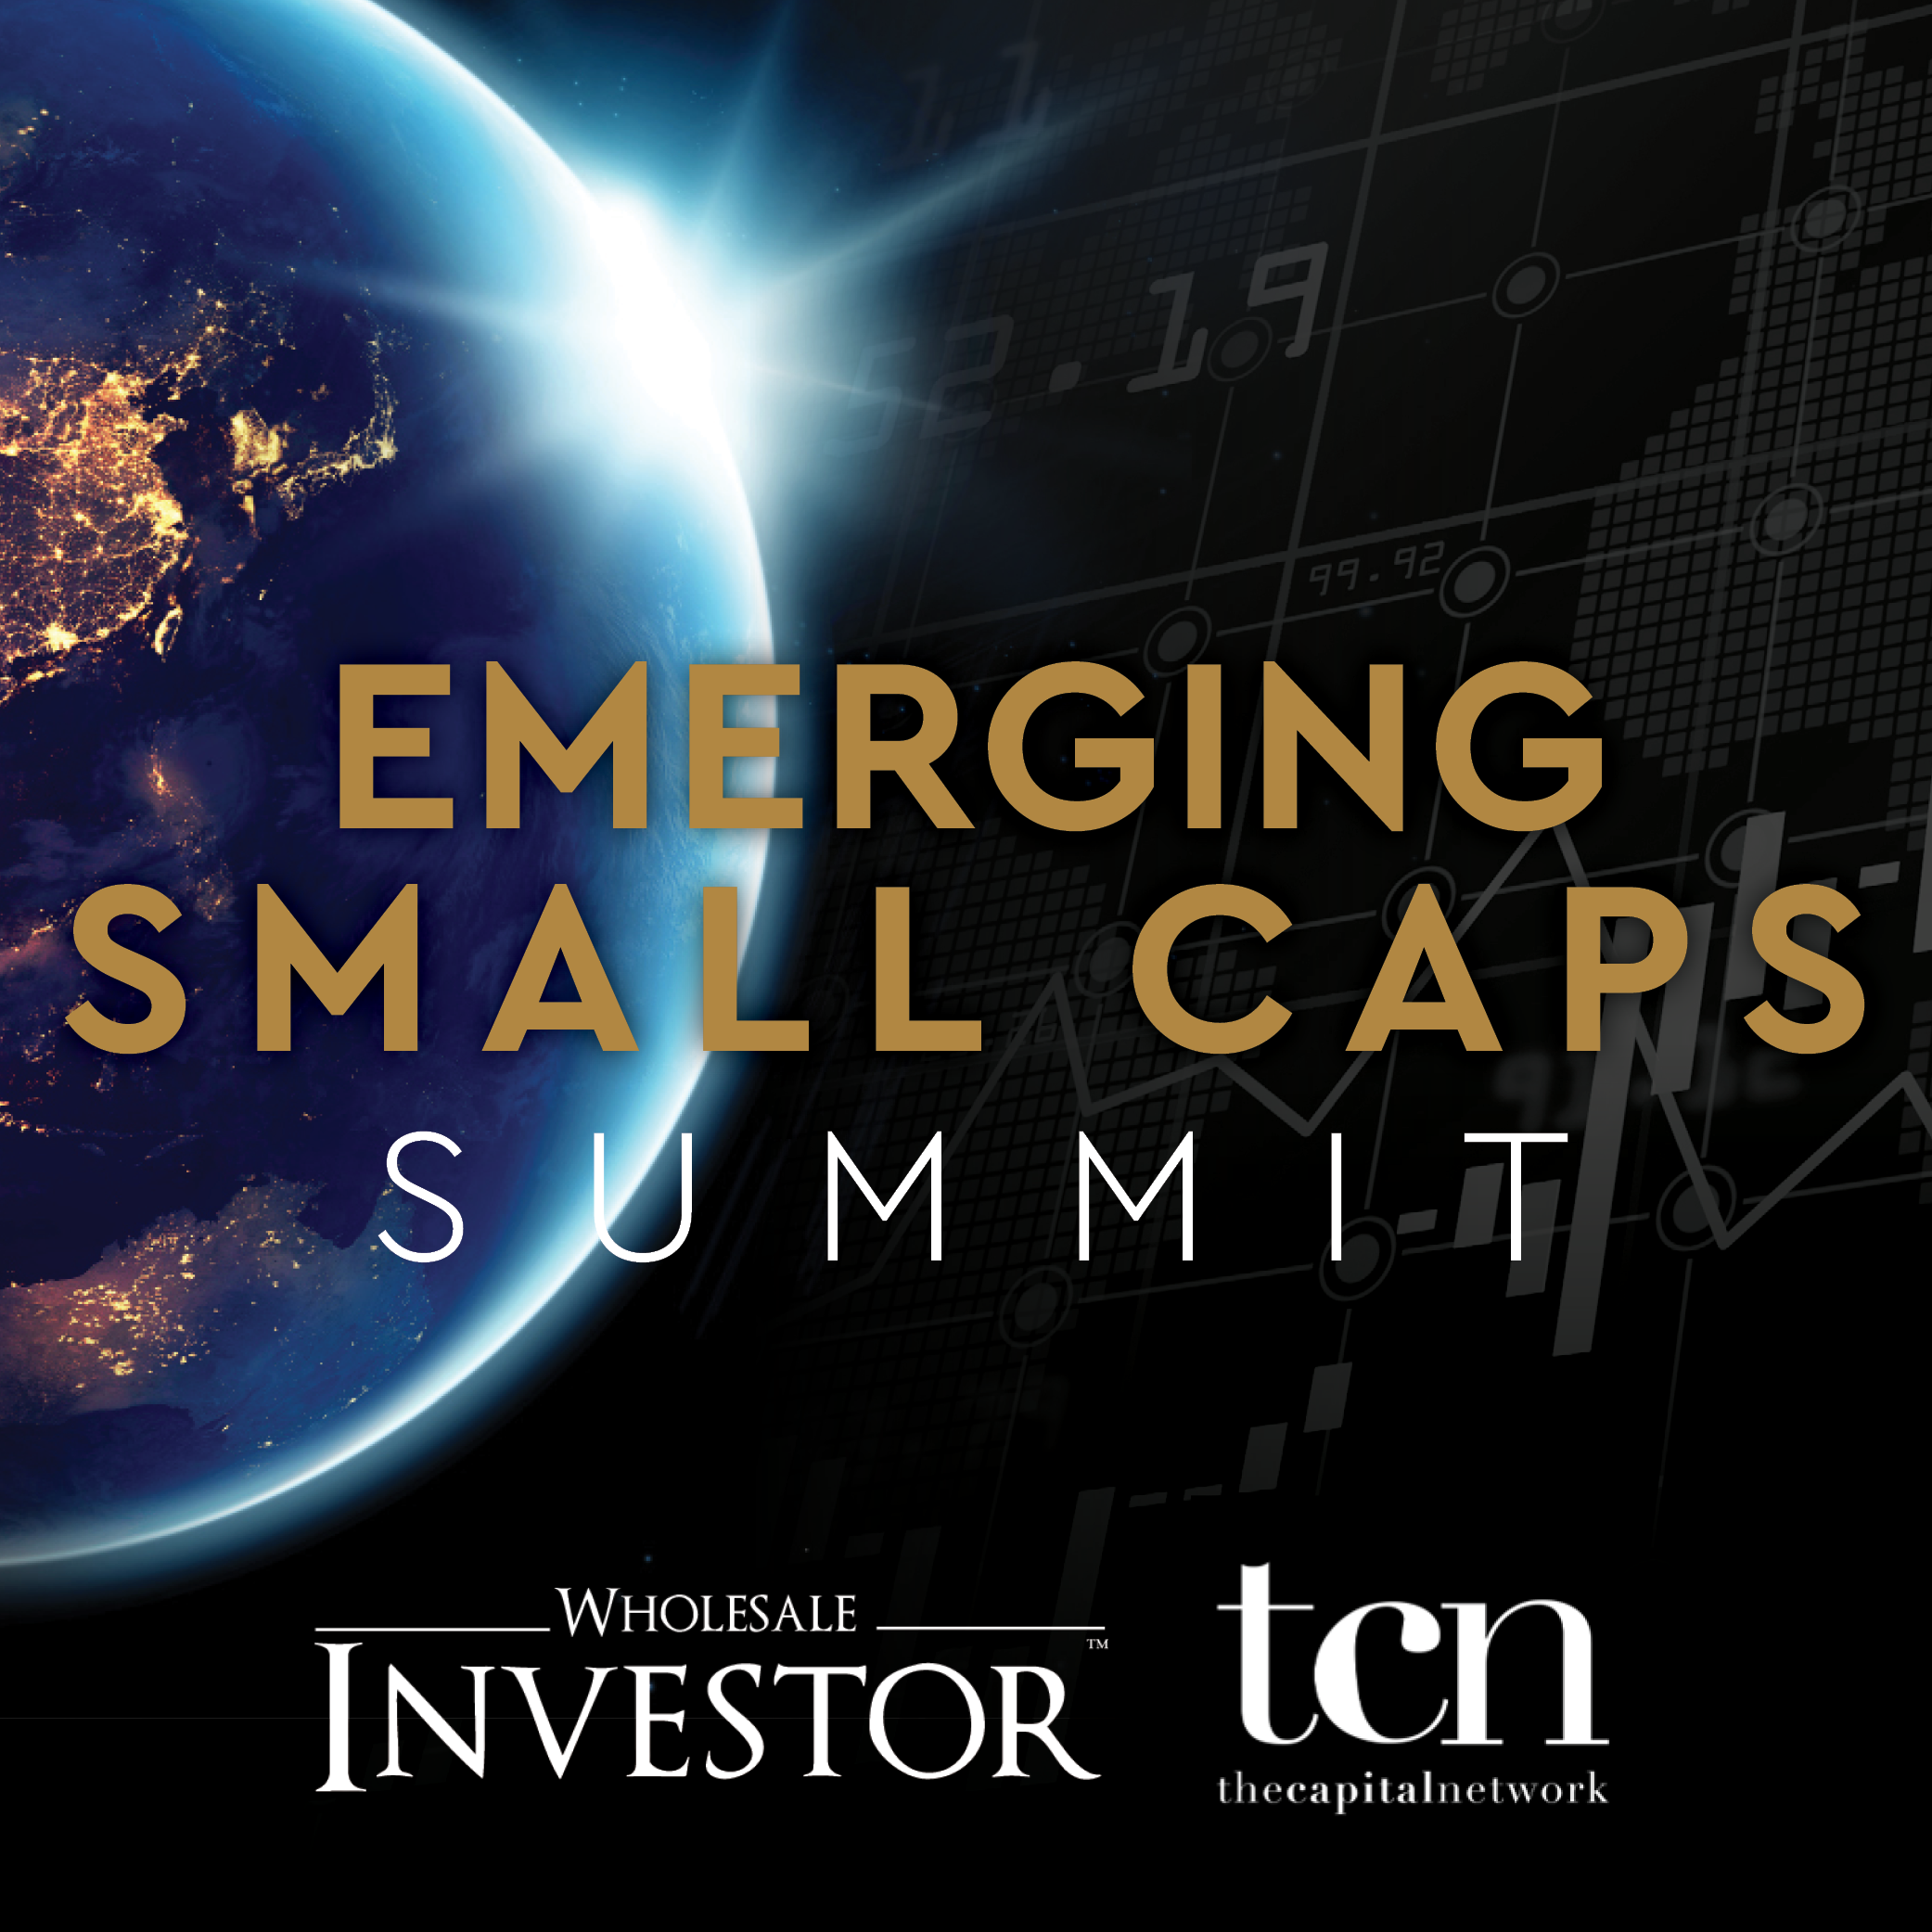 Emerging Small Caps Summit